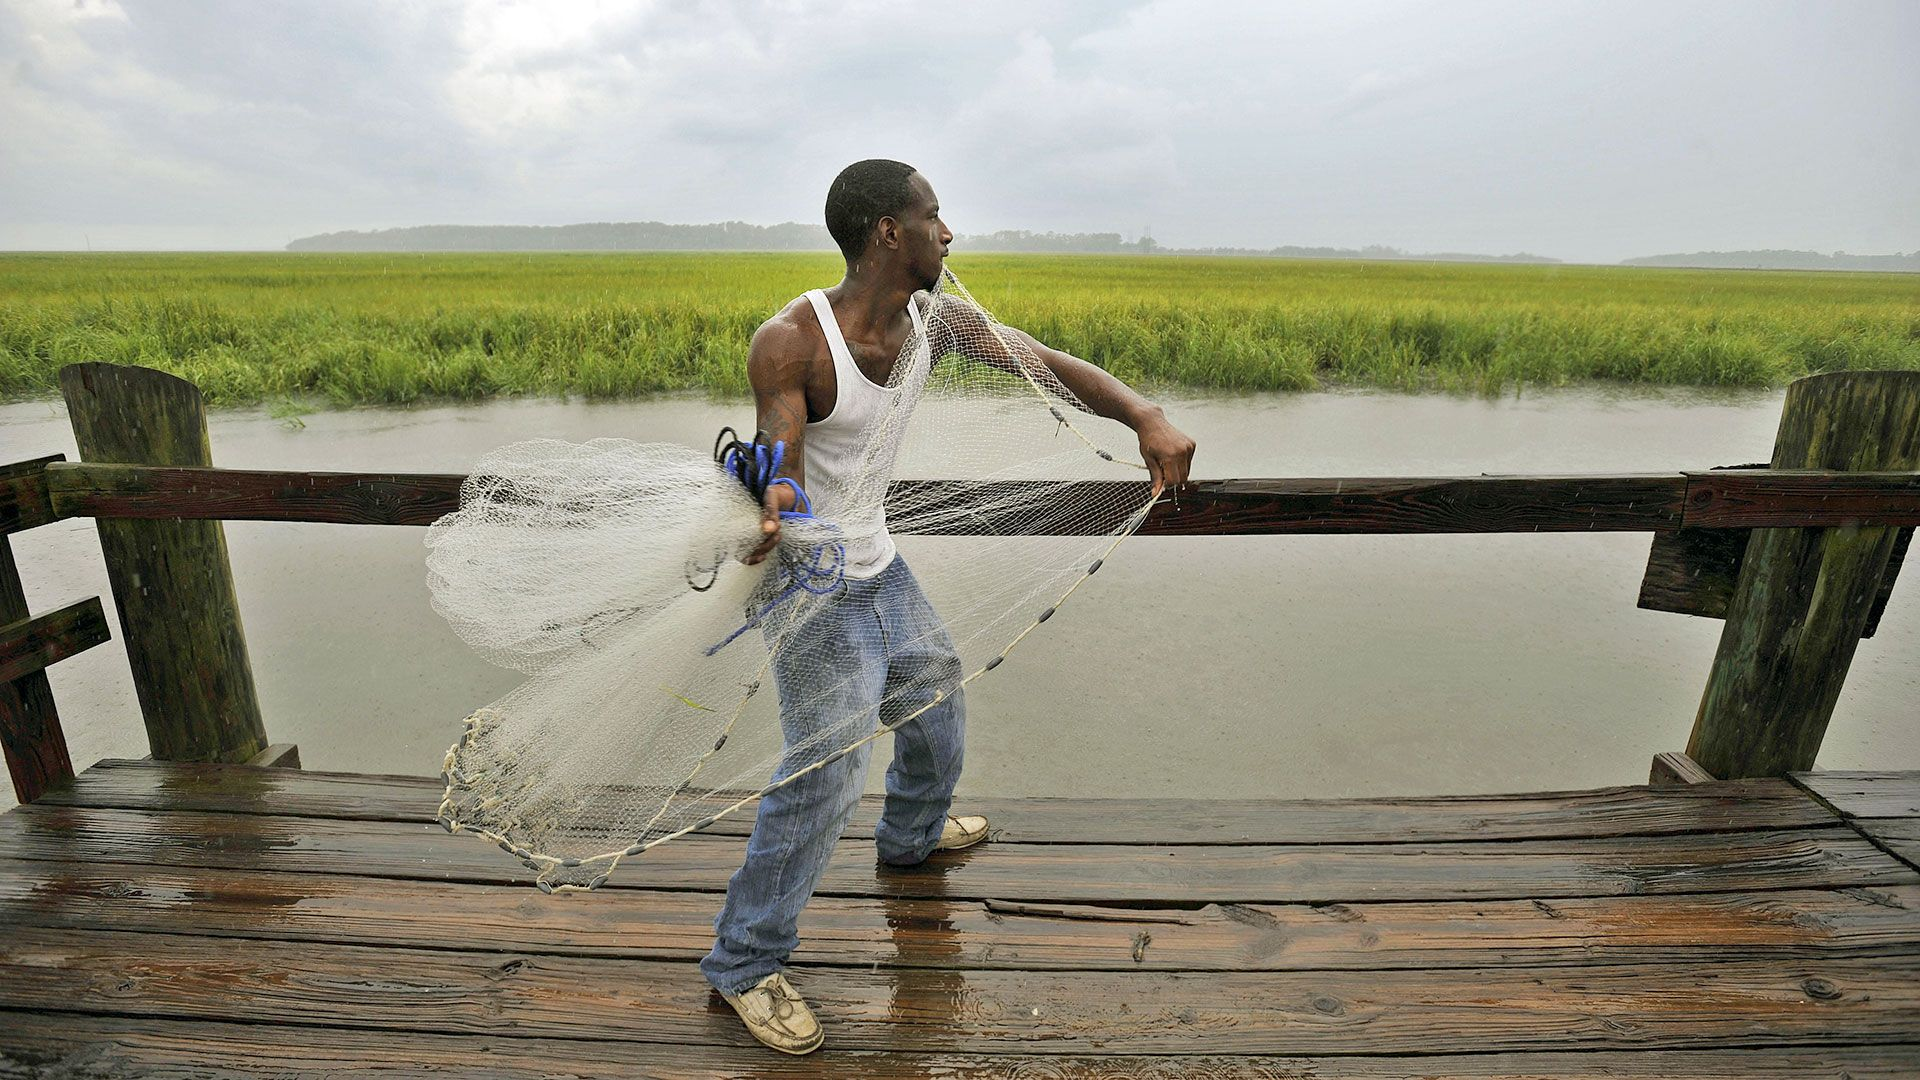 Shellfish is an integral part of Gullah Geechee cuisine, but rising sea levels and salt water erosion are causing the habitat to shift (Credit: ZUMA Press, Inc./Alamy)